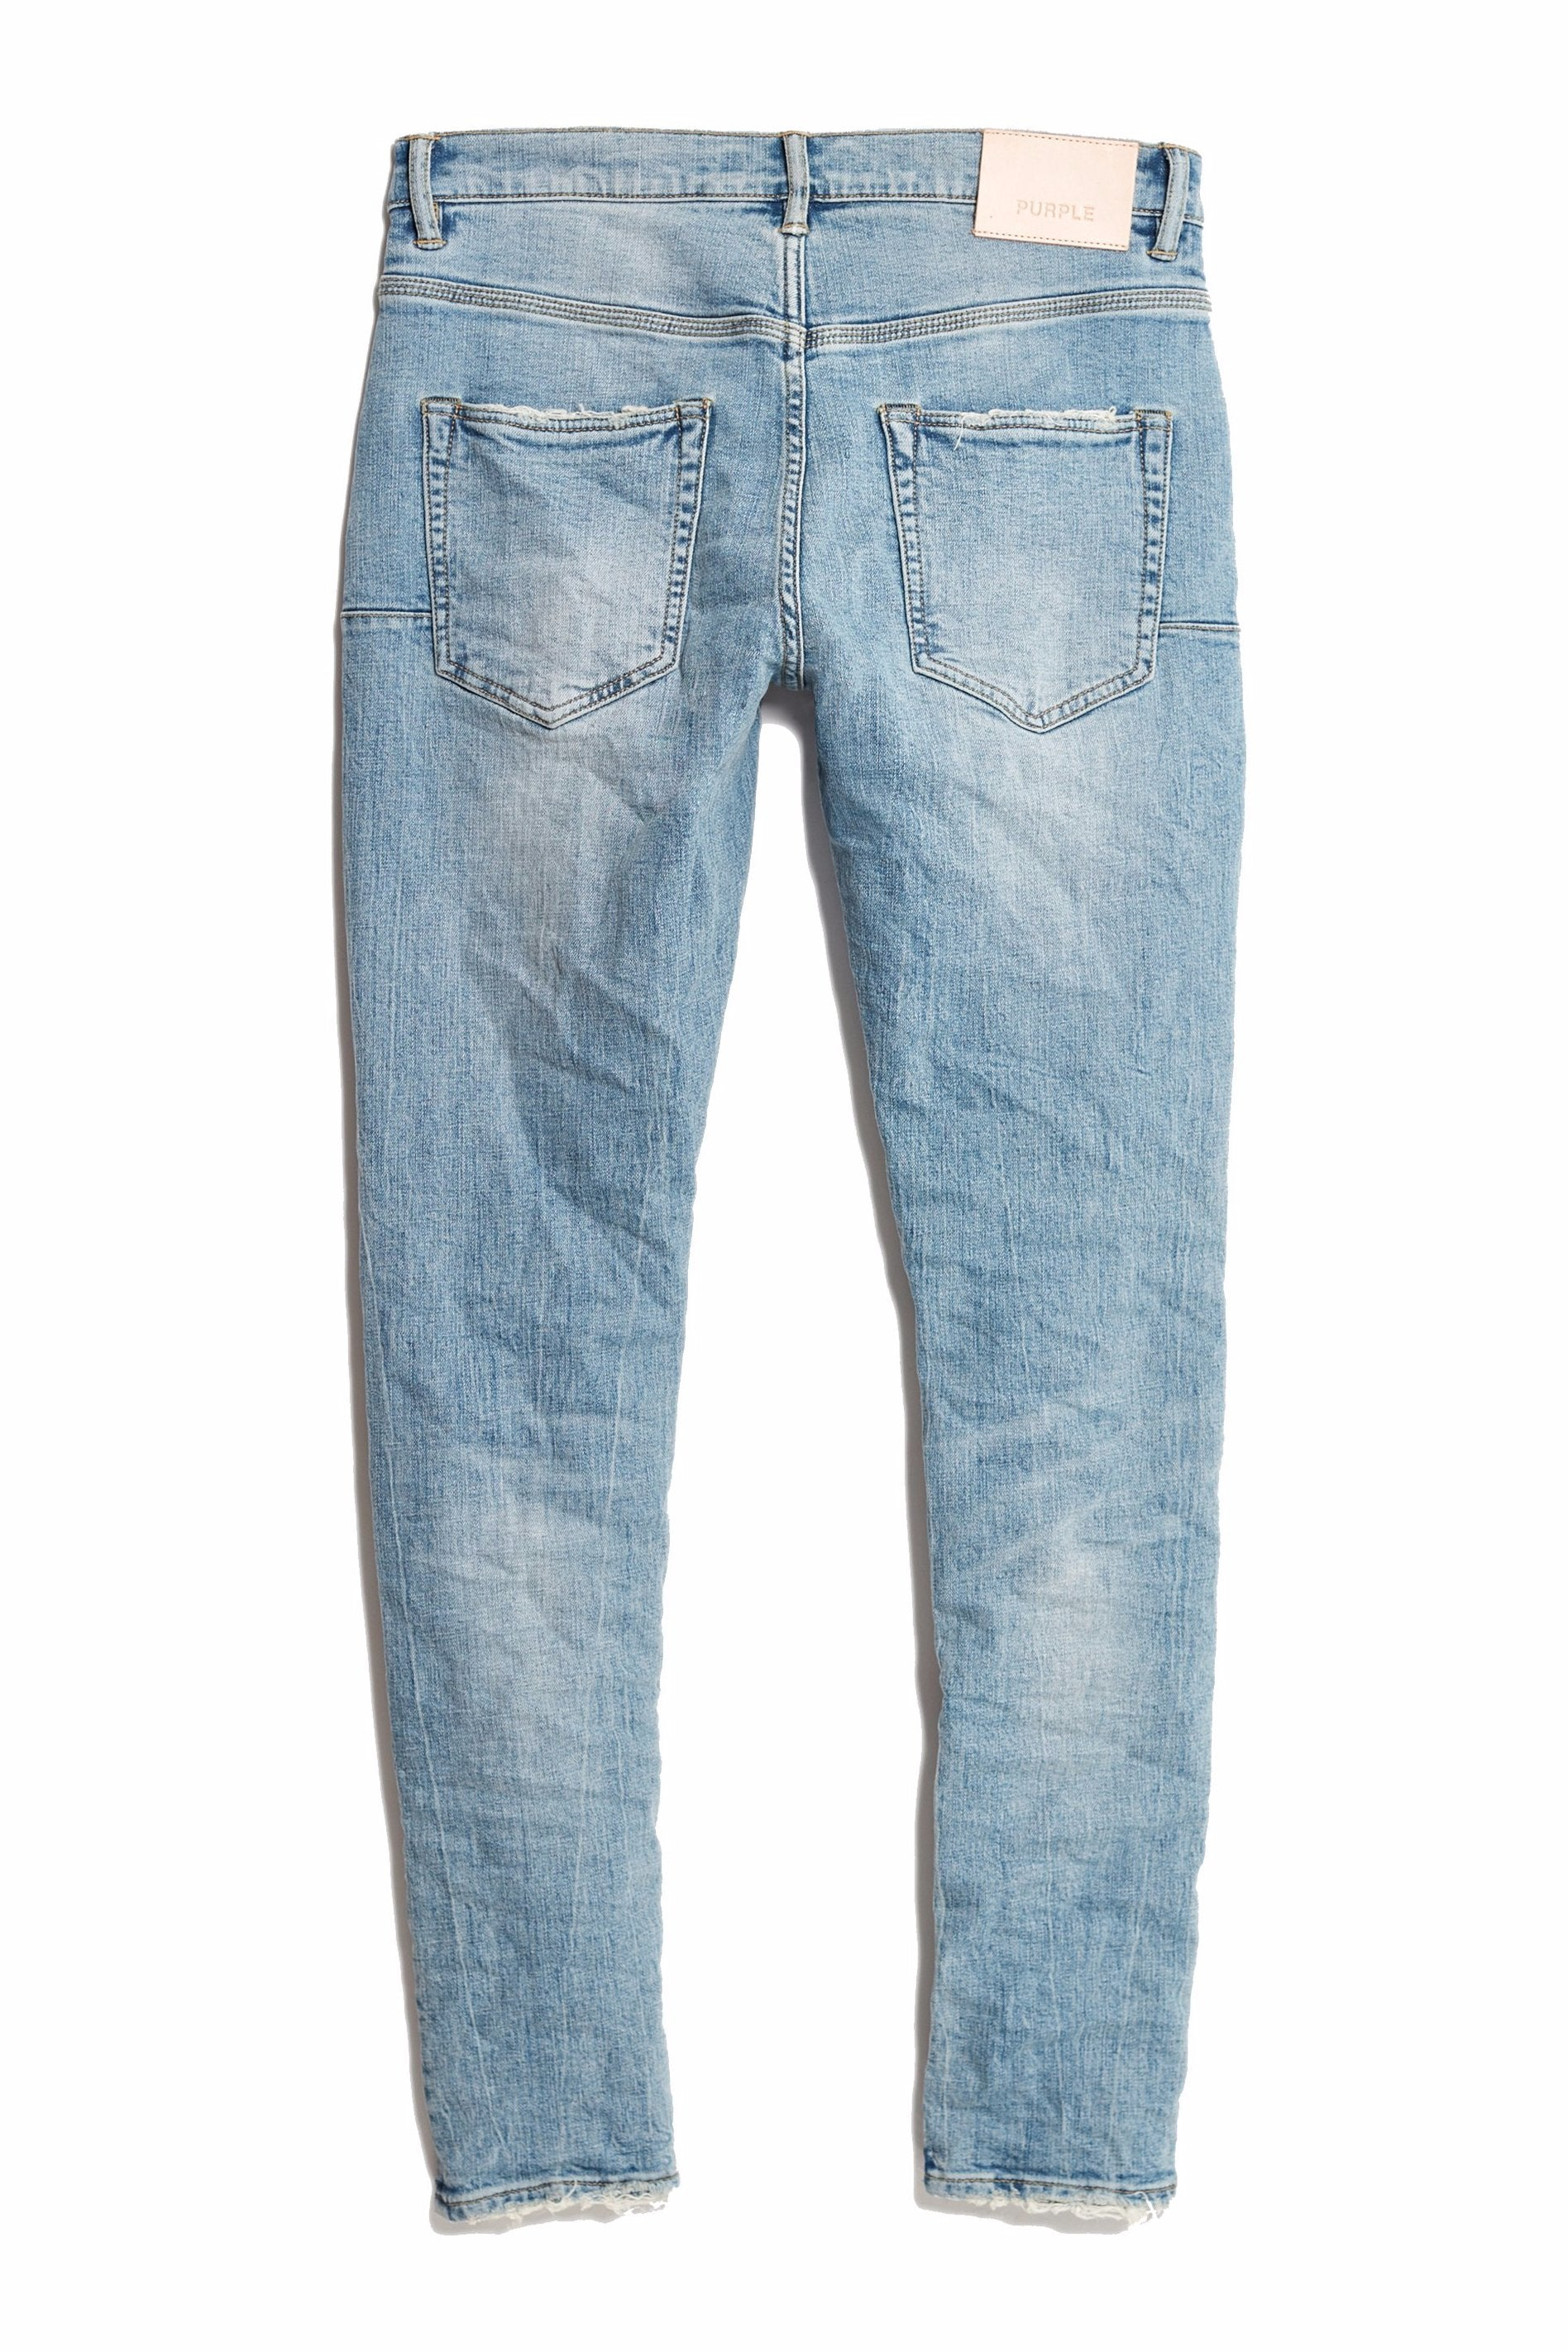 P002 MID RISE WITH TAPERED LEG - LIGHT INDIGO BLOWOUT